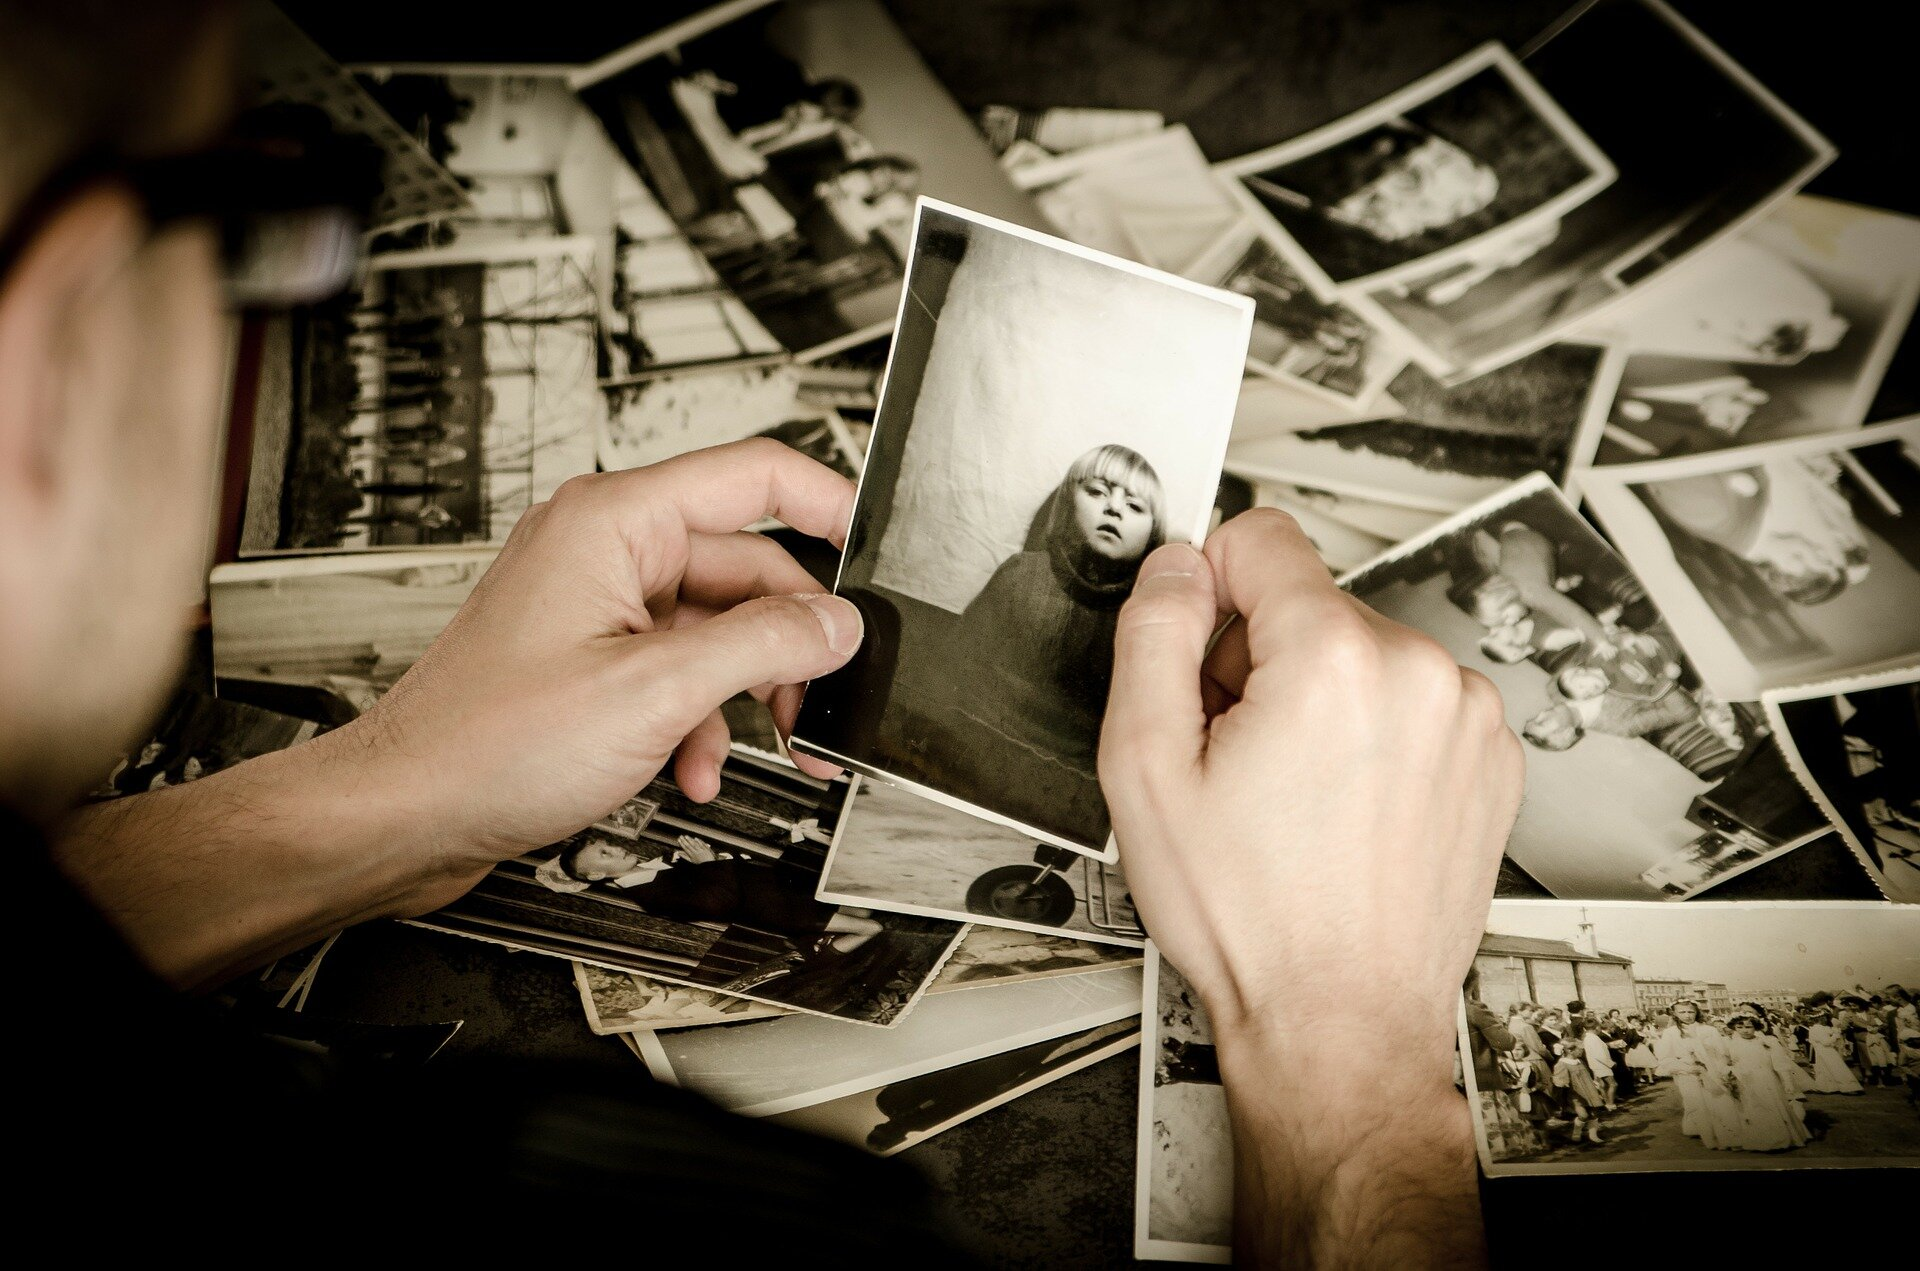 False Memories of Crime Appear Real When Retold to Others